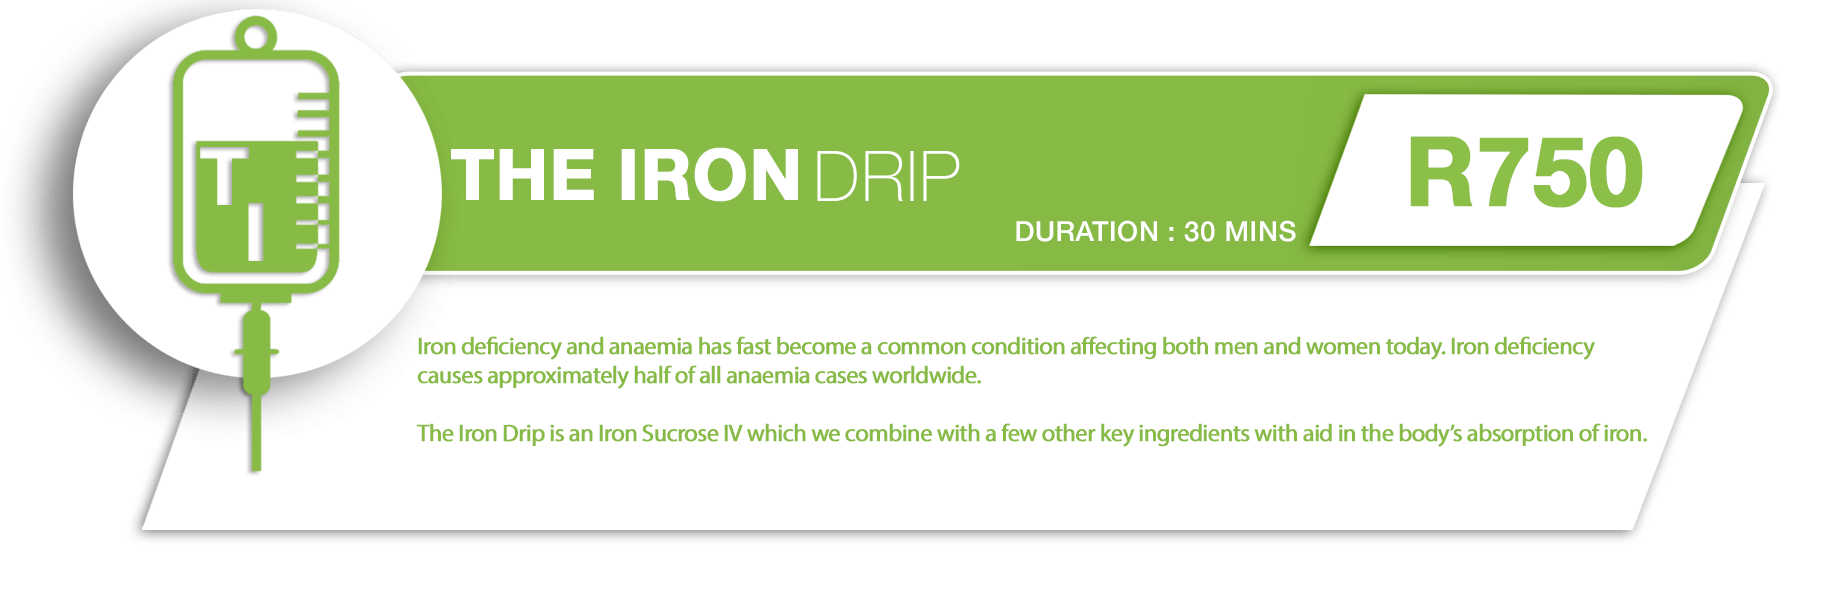 Iron deficiency and anaemia has fast become a common condition affecting both men and women today. The Iron Drip is an Iron Sucrose IV which we combine with a few other key ingredients with aid in the body's absorption of iron.